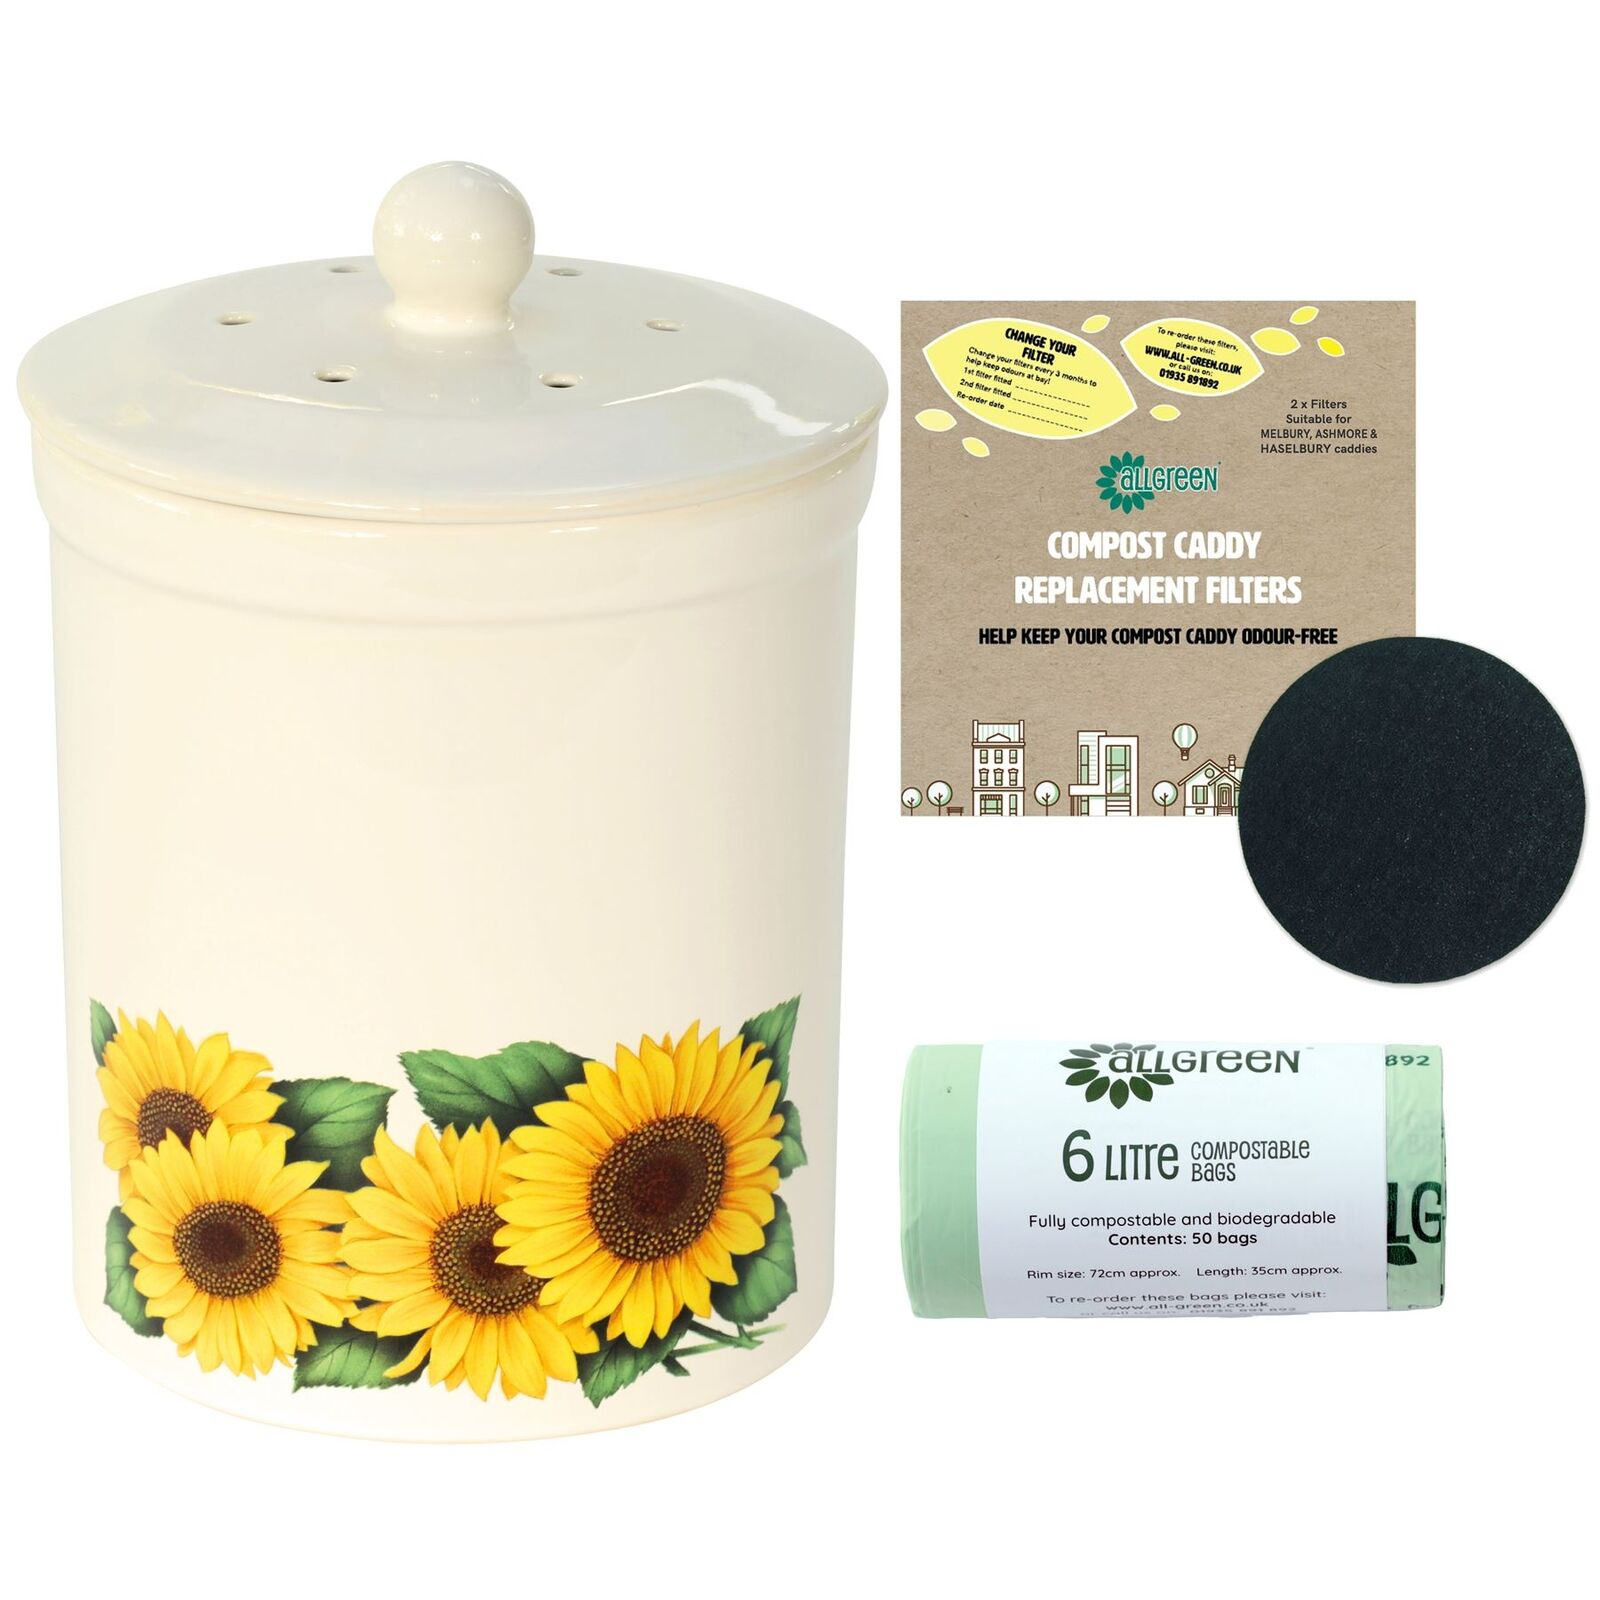 3L Ashmore Sunflower Ceramic Compost Caddy, 2 Filters & 50x6L Compostable Bags